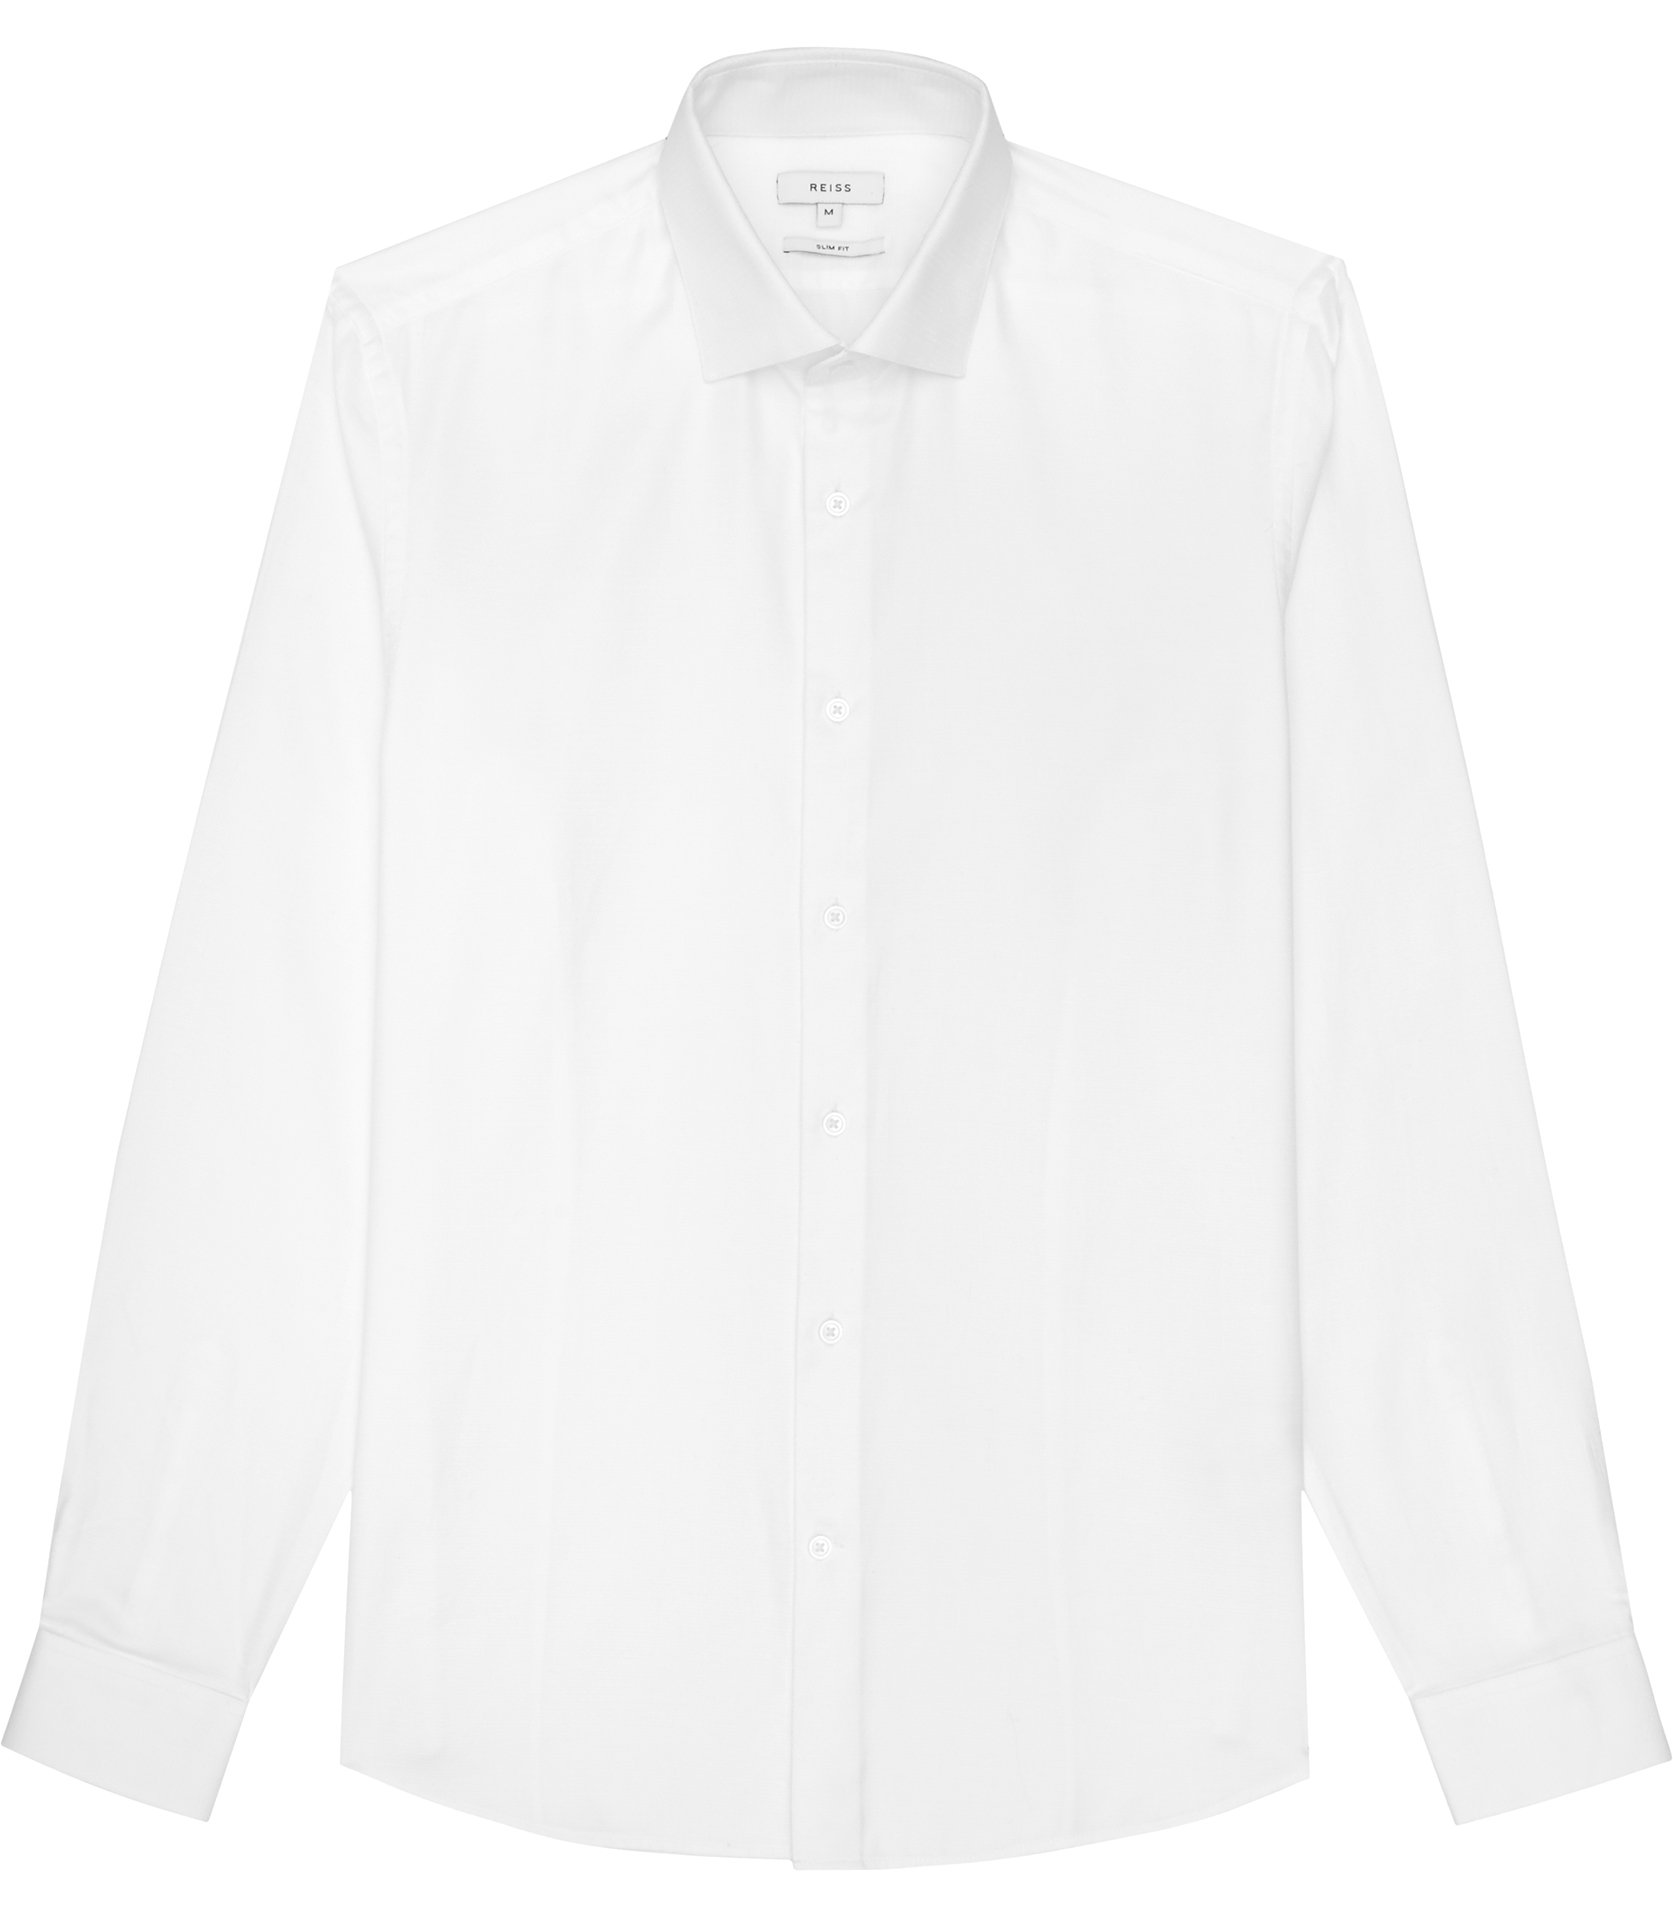 Reiss White Time Slim-Fit Textured Shirt